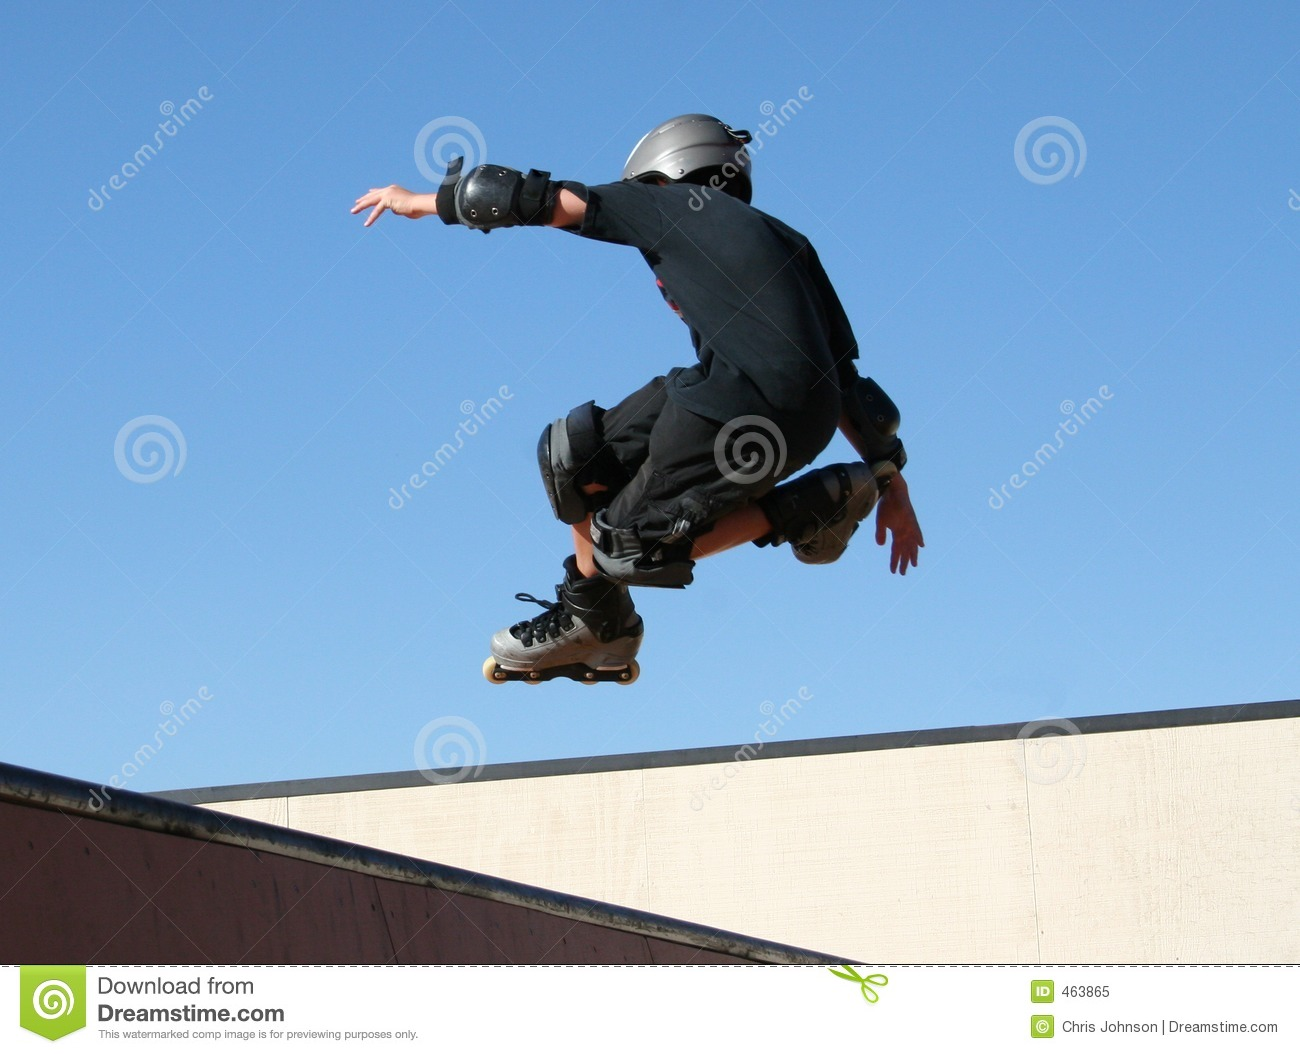 Download Practice stock image. Image of jumping, dangerous, balance - 463865